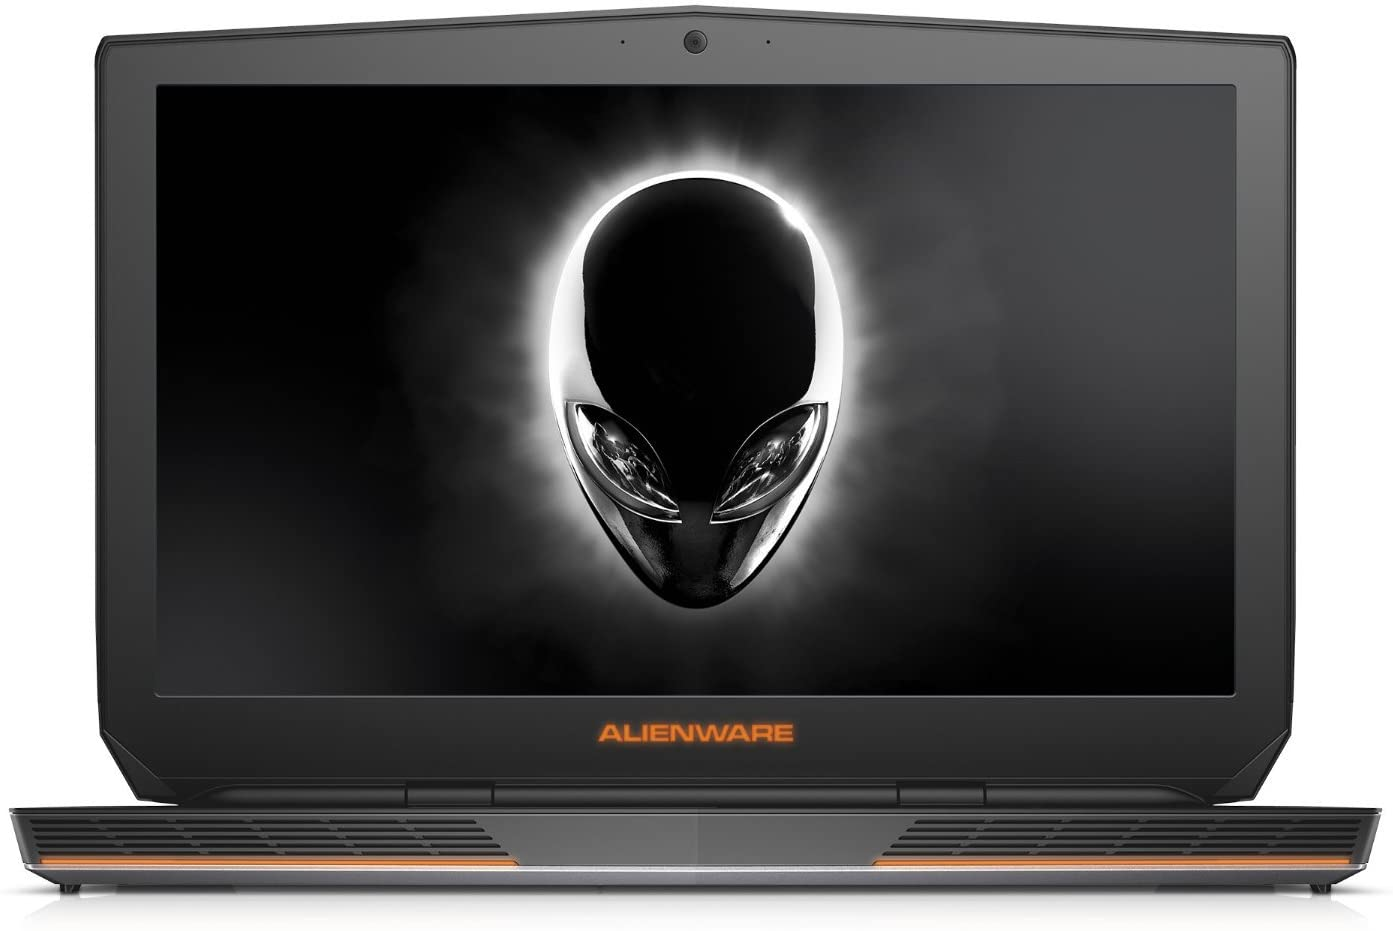 Alienware 17 AW17R3 17.3-Inch Full HD Gaming Laptop, 6th Gen Intel Core i7-6700HQ UP to 3.5GHz, 8GB Memory, 128GB SSD + 1TB Hard Drive, 3GB GeForce GTX 970M Graphics, Windows 10